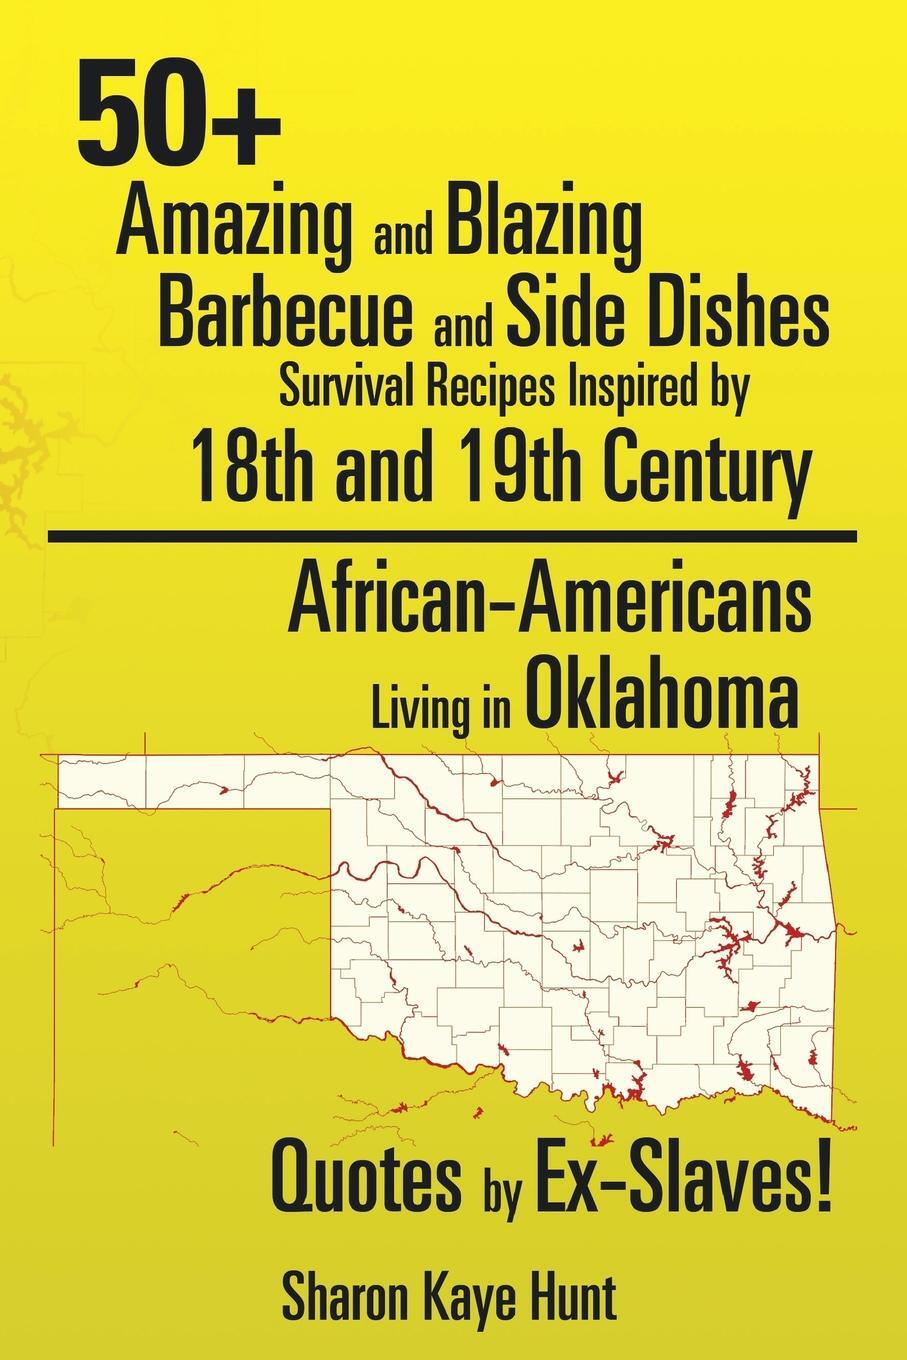 Книга 0+ Amazing and Blazing Barbeque and Side Dishes Survival Recipes Inspired by 18th and 19th Century African-Americans Living in Oklahoma Quotes by Ex-Slaves!. Sharon Kaye Hunt